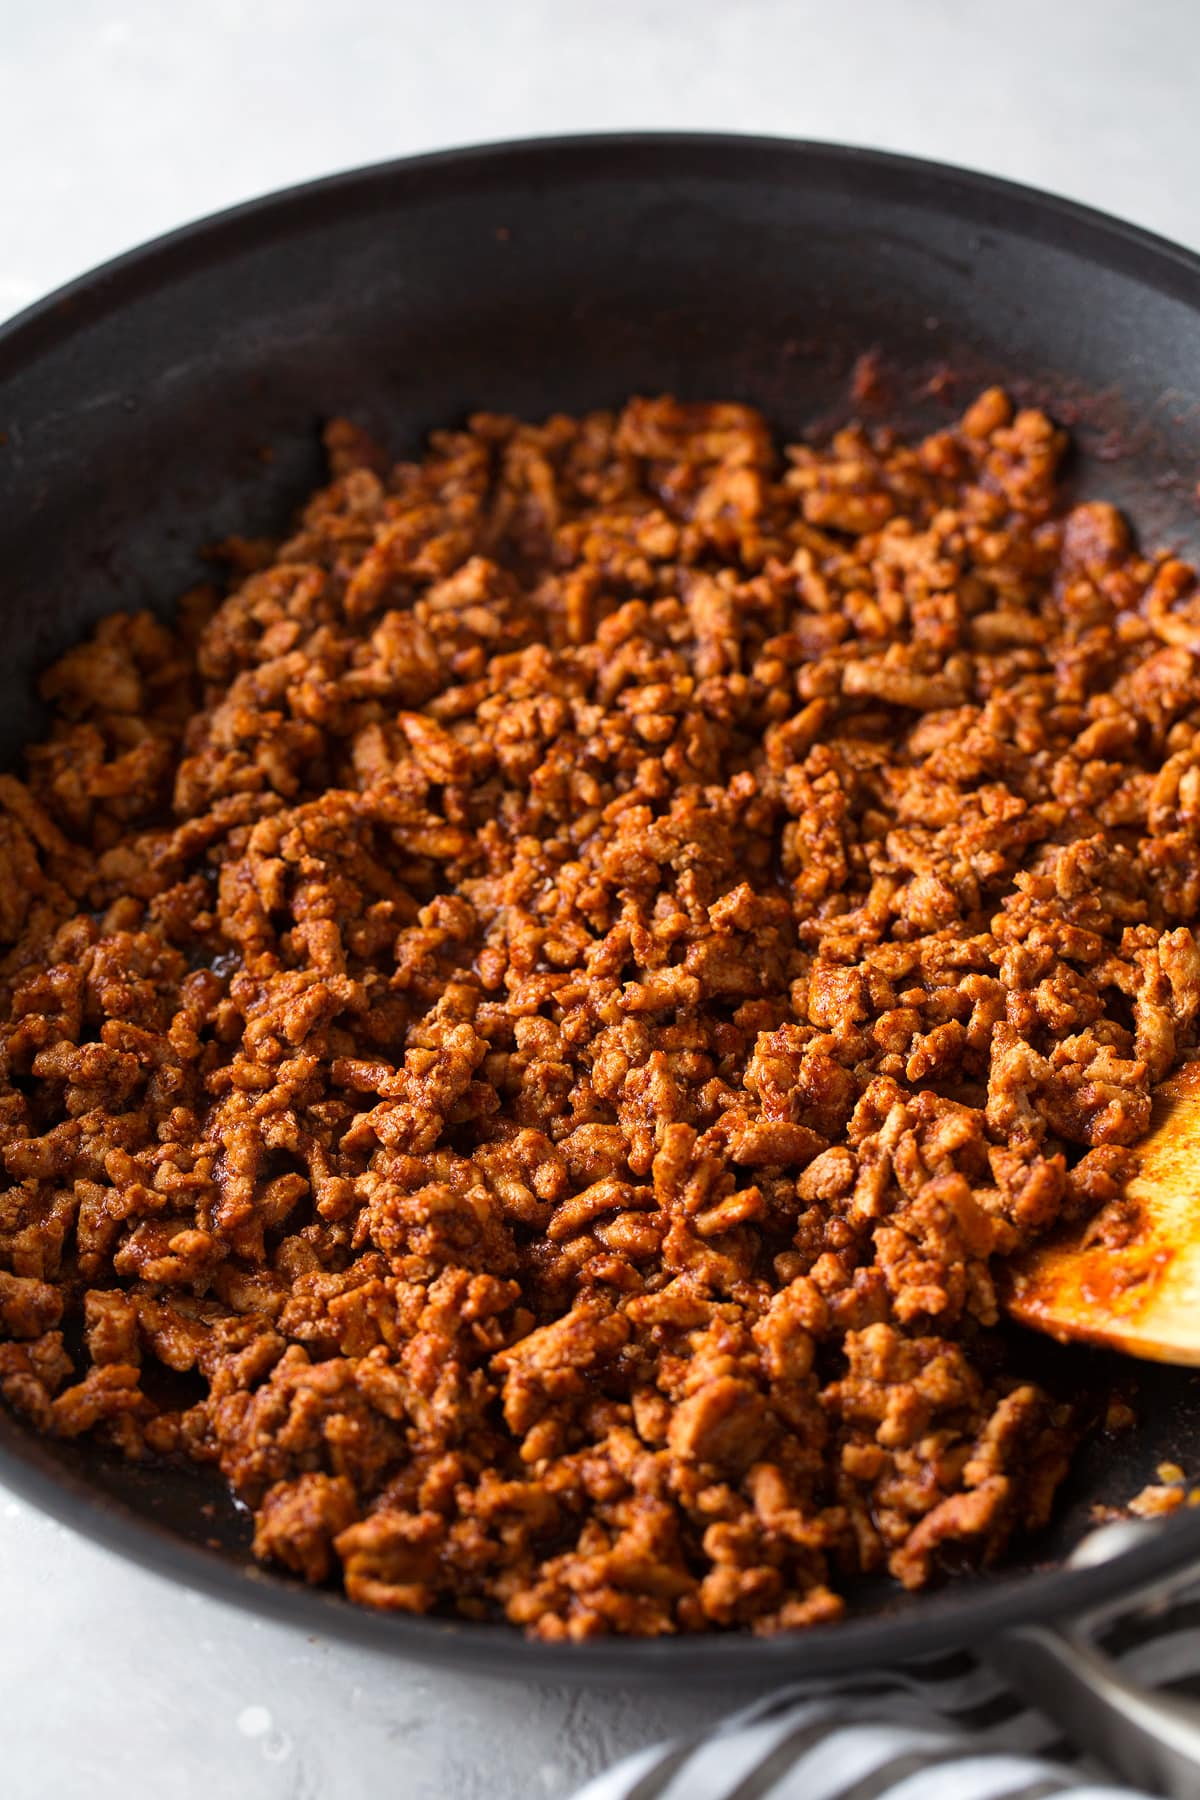 Taco Bowls ground turkey filling in large non-stick skillet